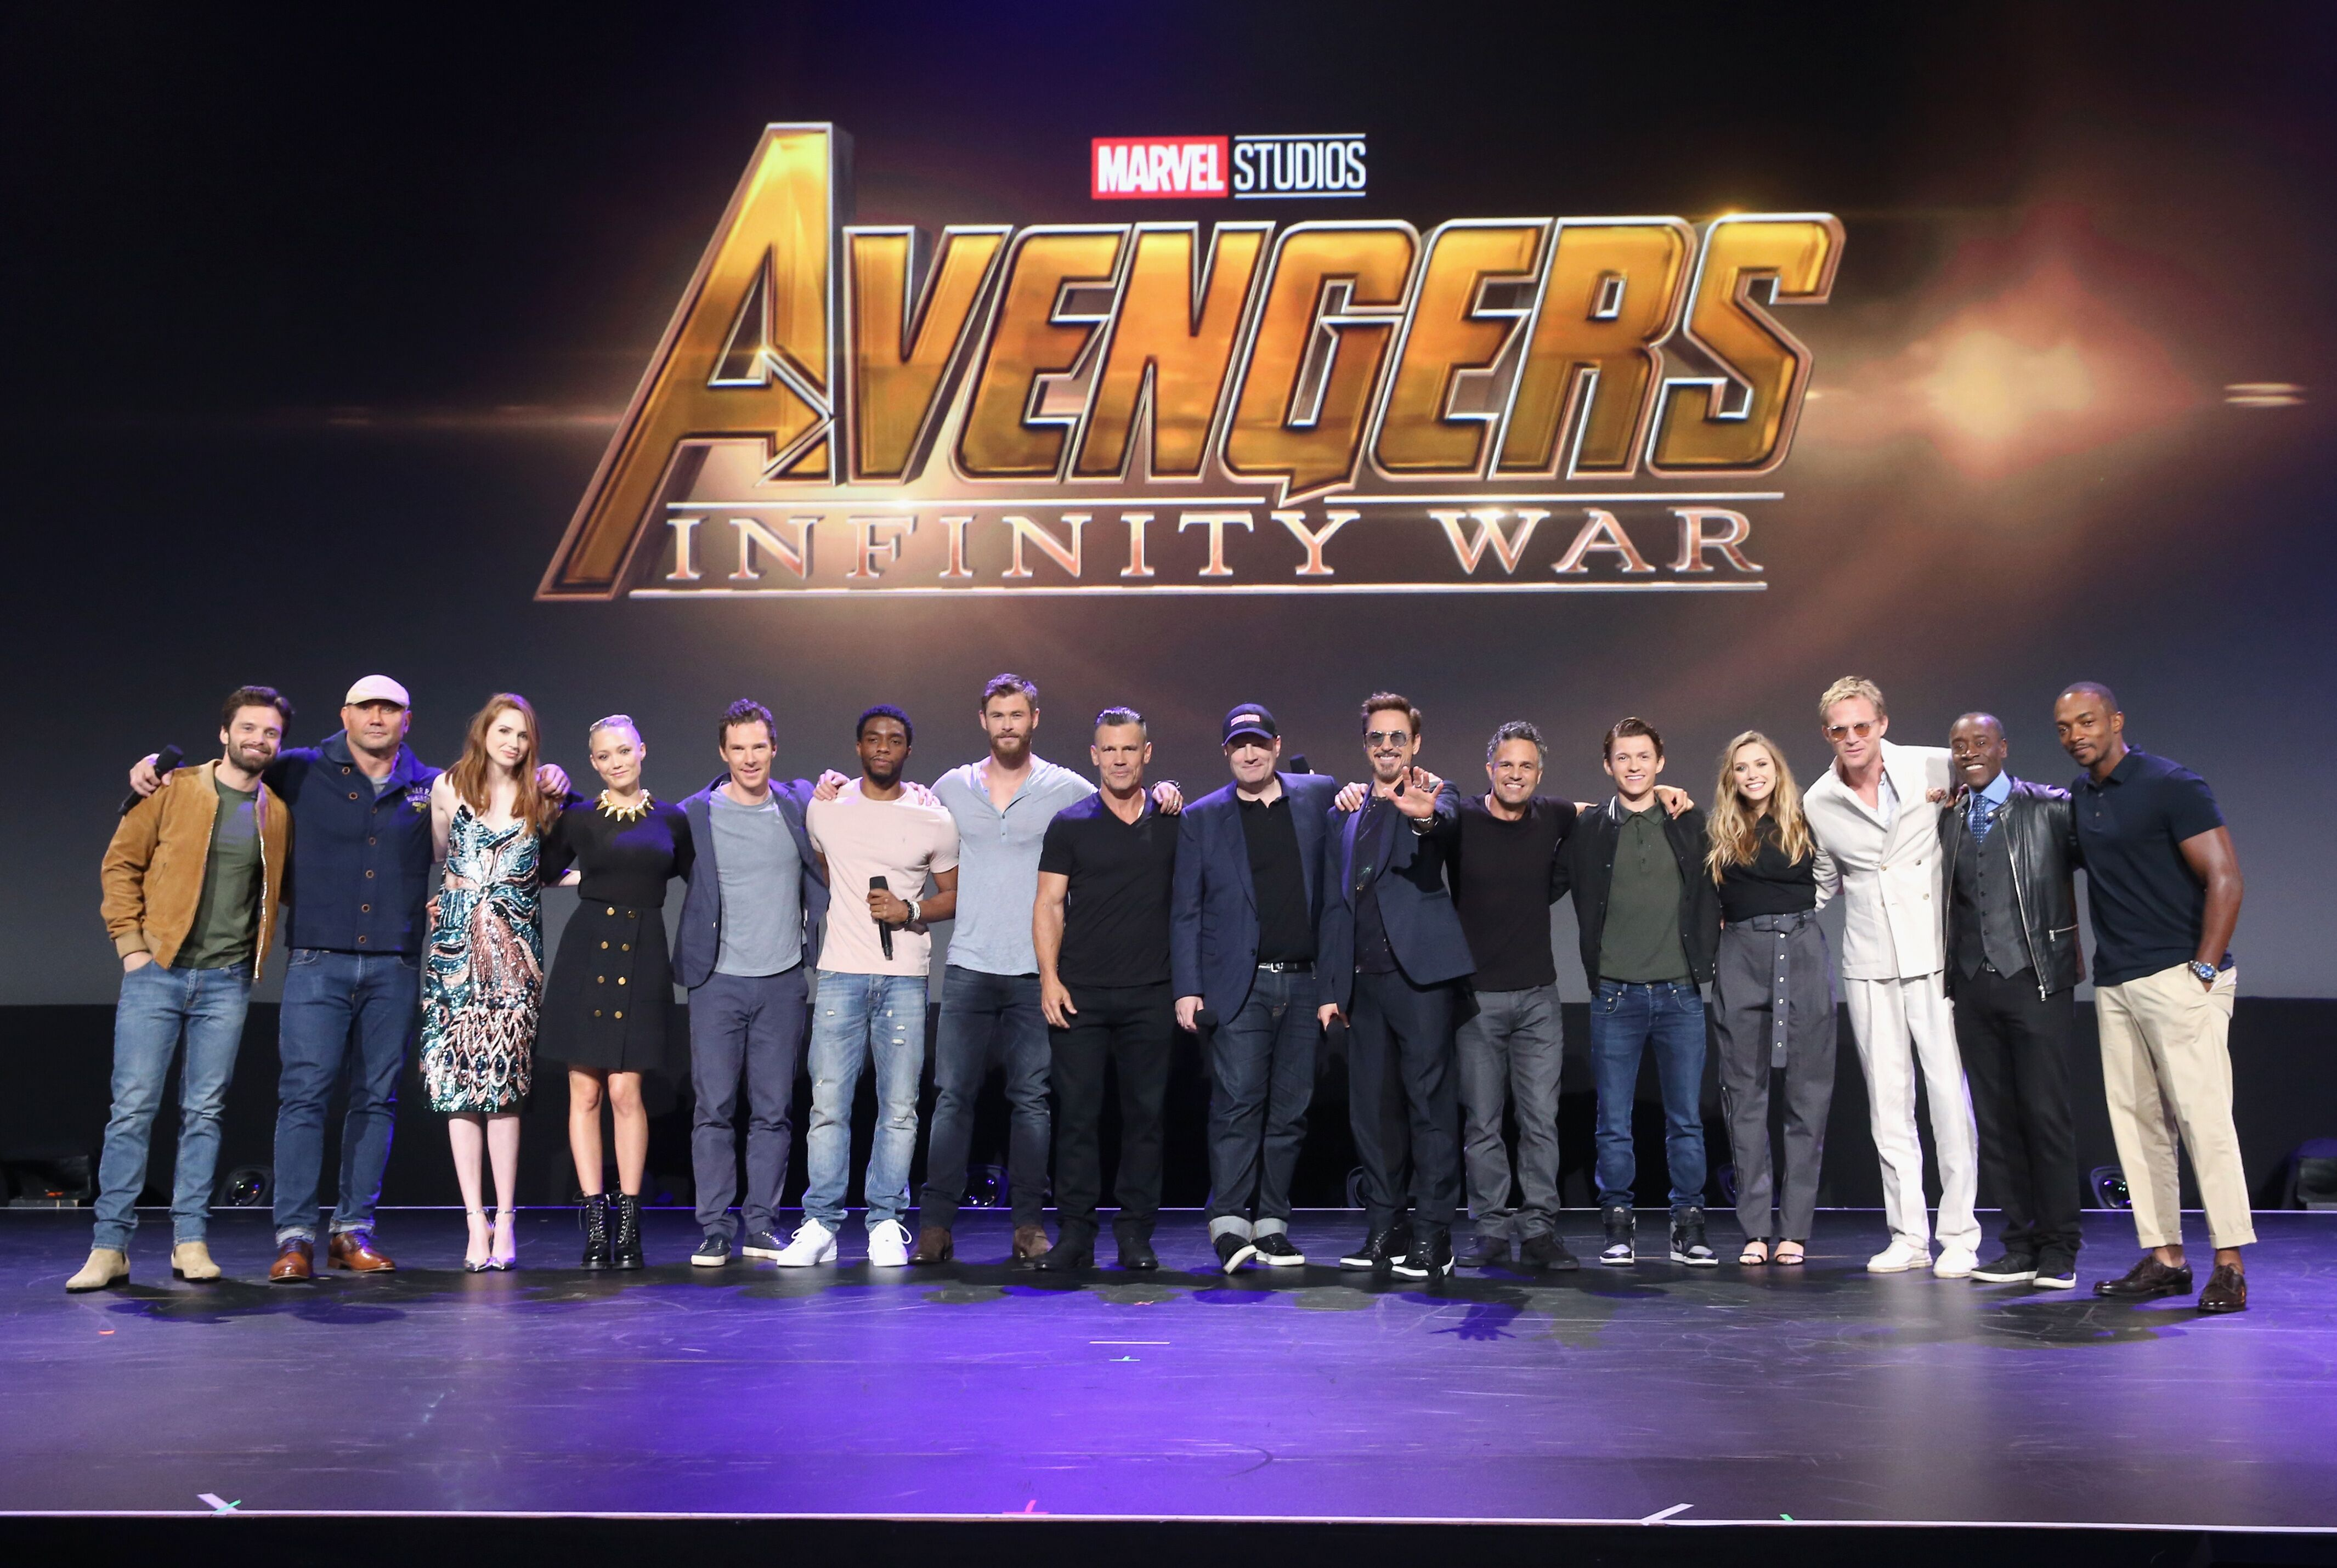 Marvel's behind-the-scenes featurette has us emotional over how far the MCU has come